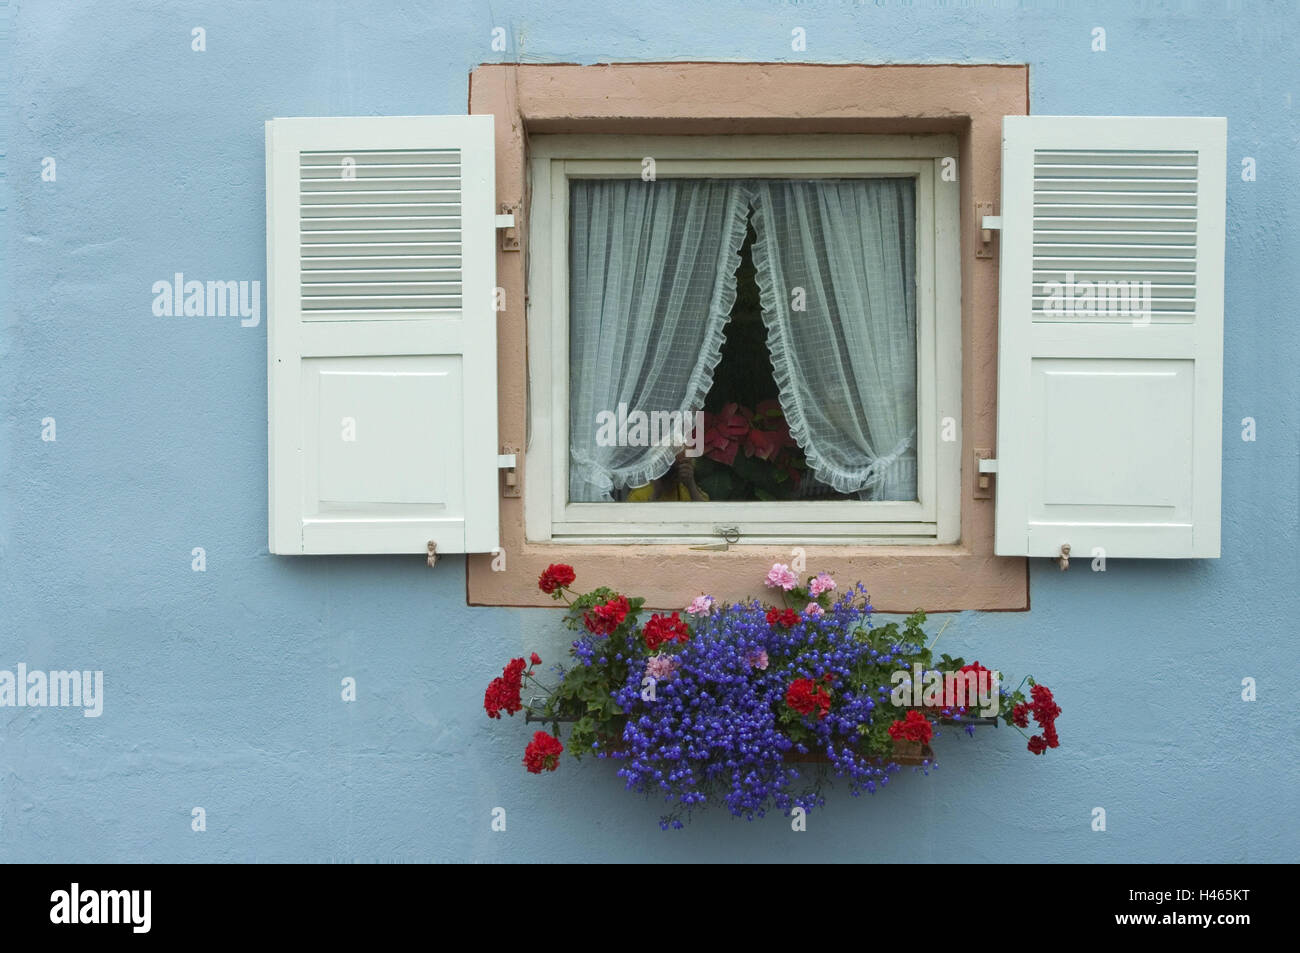 House, window, floral decoration, detail, residential house, facade, light blue, shutters, white, openly, curtains, - Stock Image